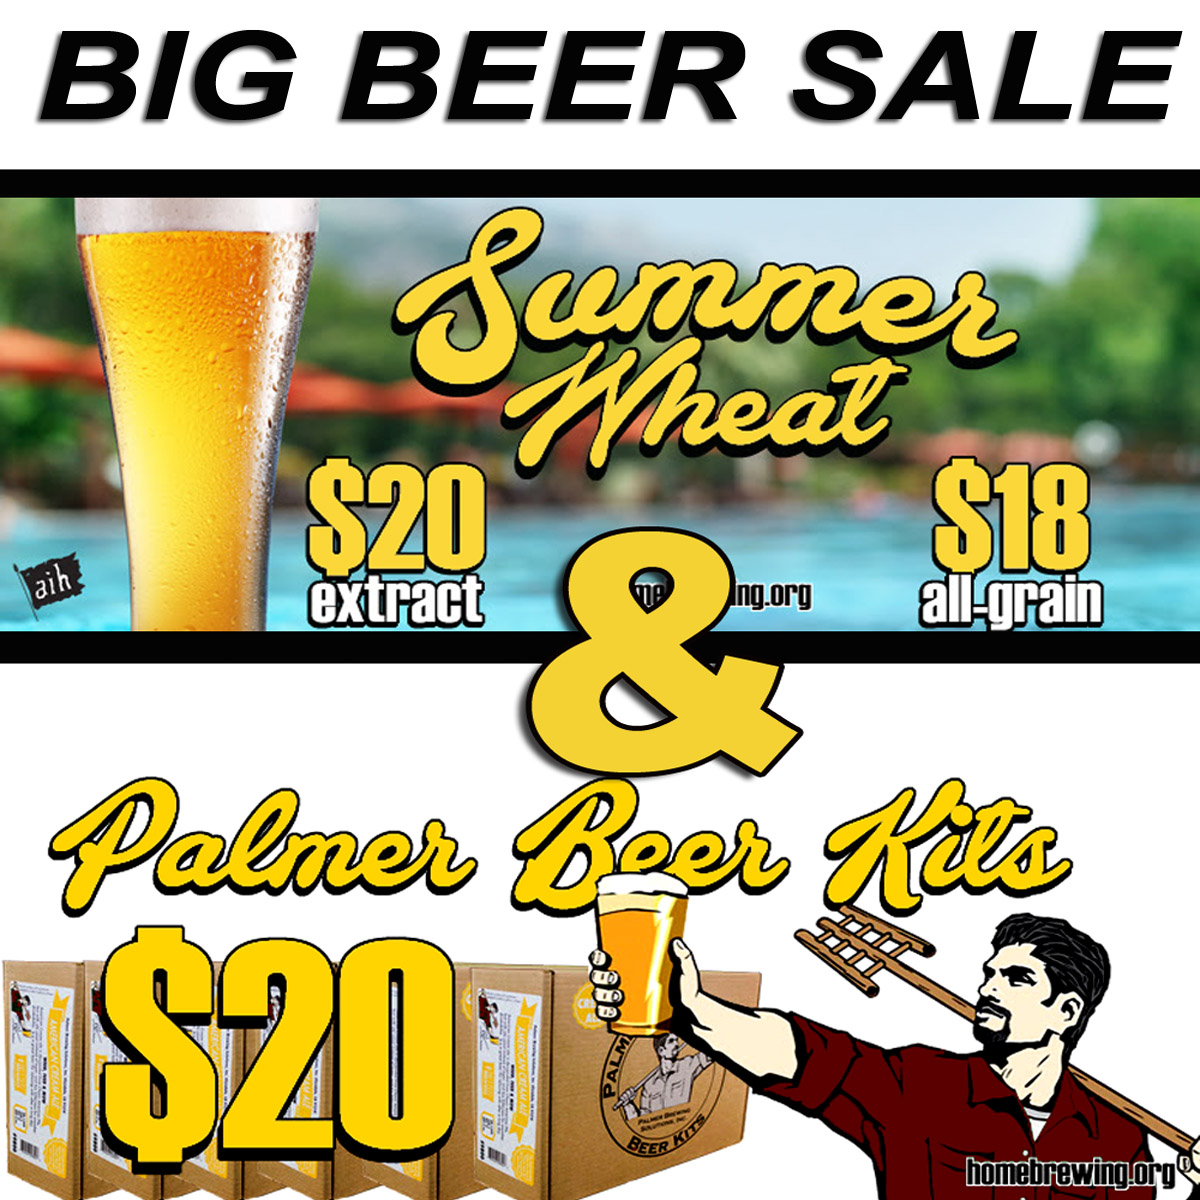 Homebrew Sale for Big Beer Sale - Palmer Homebrewing Beer Kits For Just $20 Sale